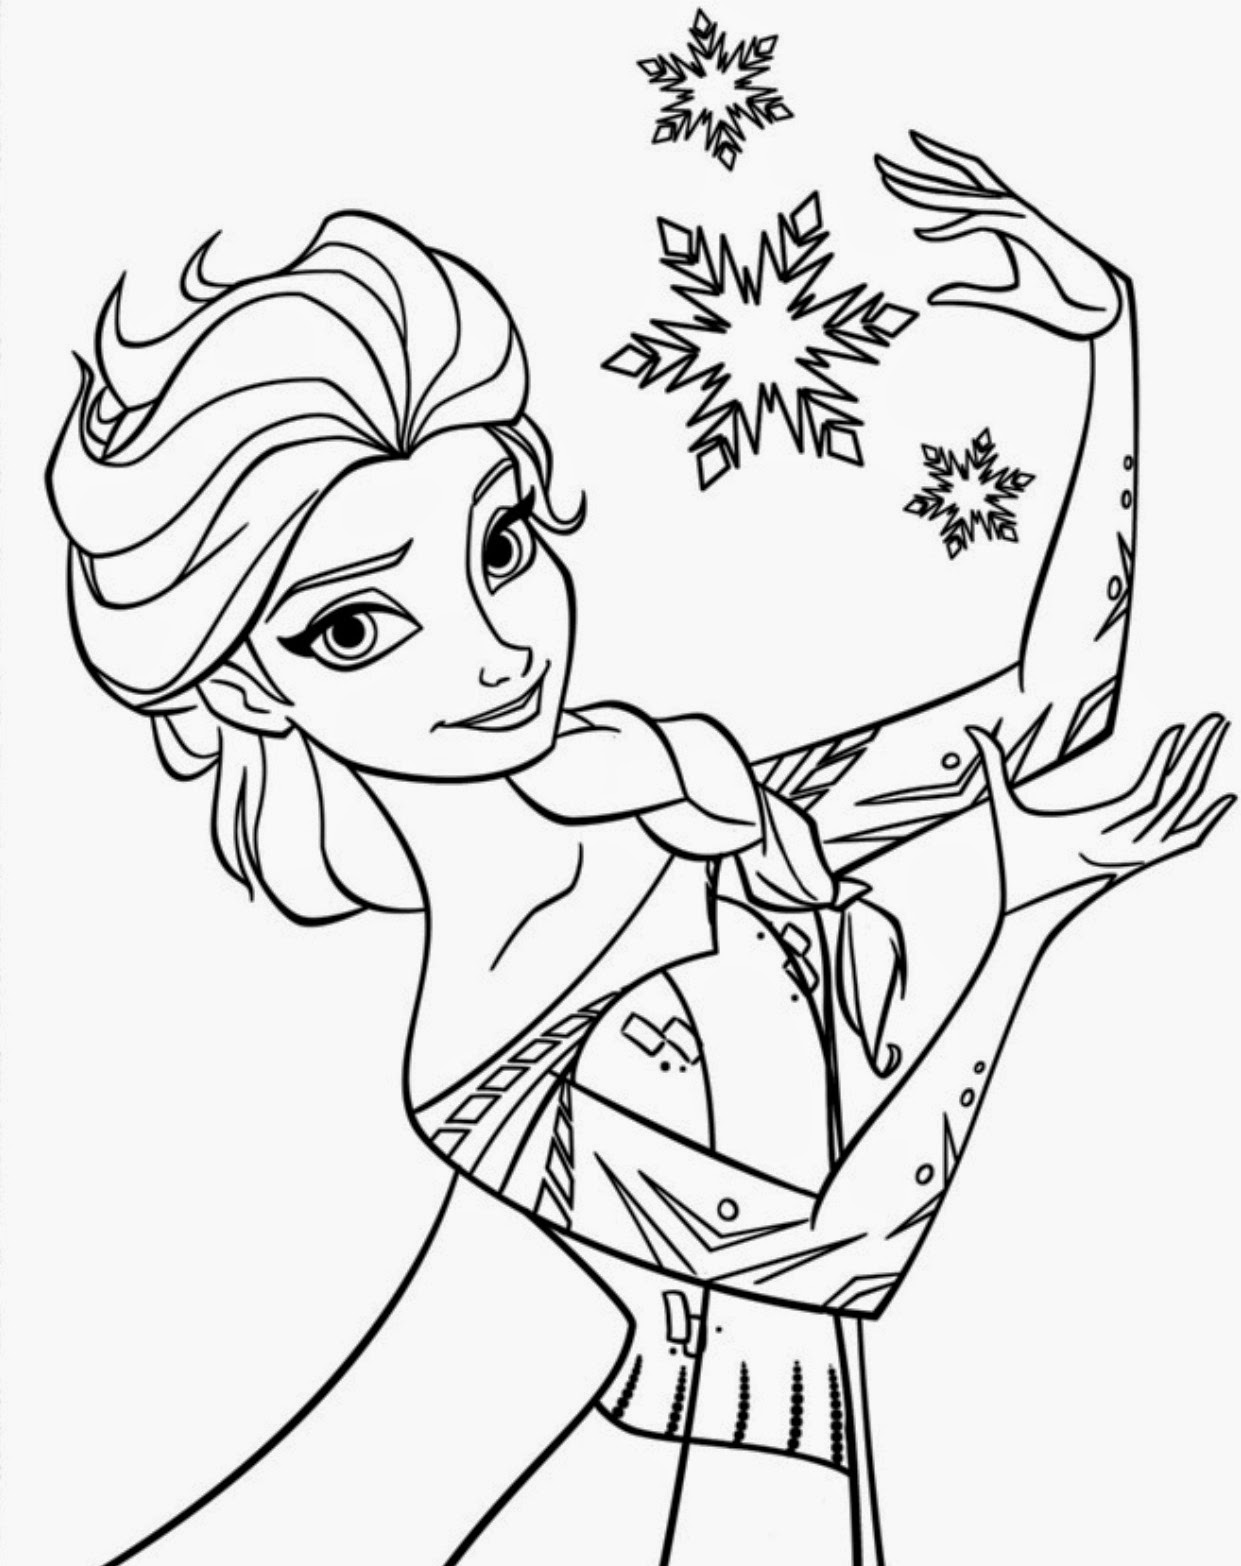 frozen coloring pages 15 beautiful disney frozen coloring pages free instant pages coloring frozen